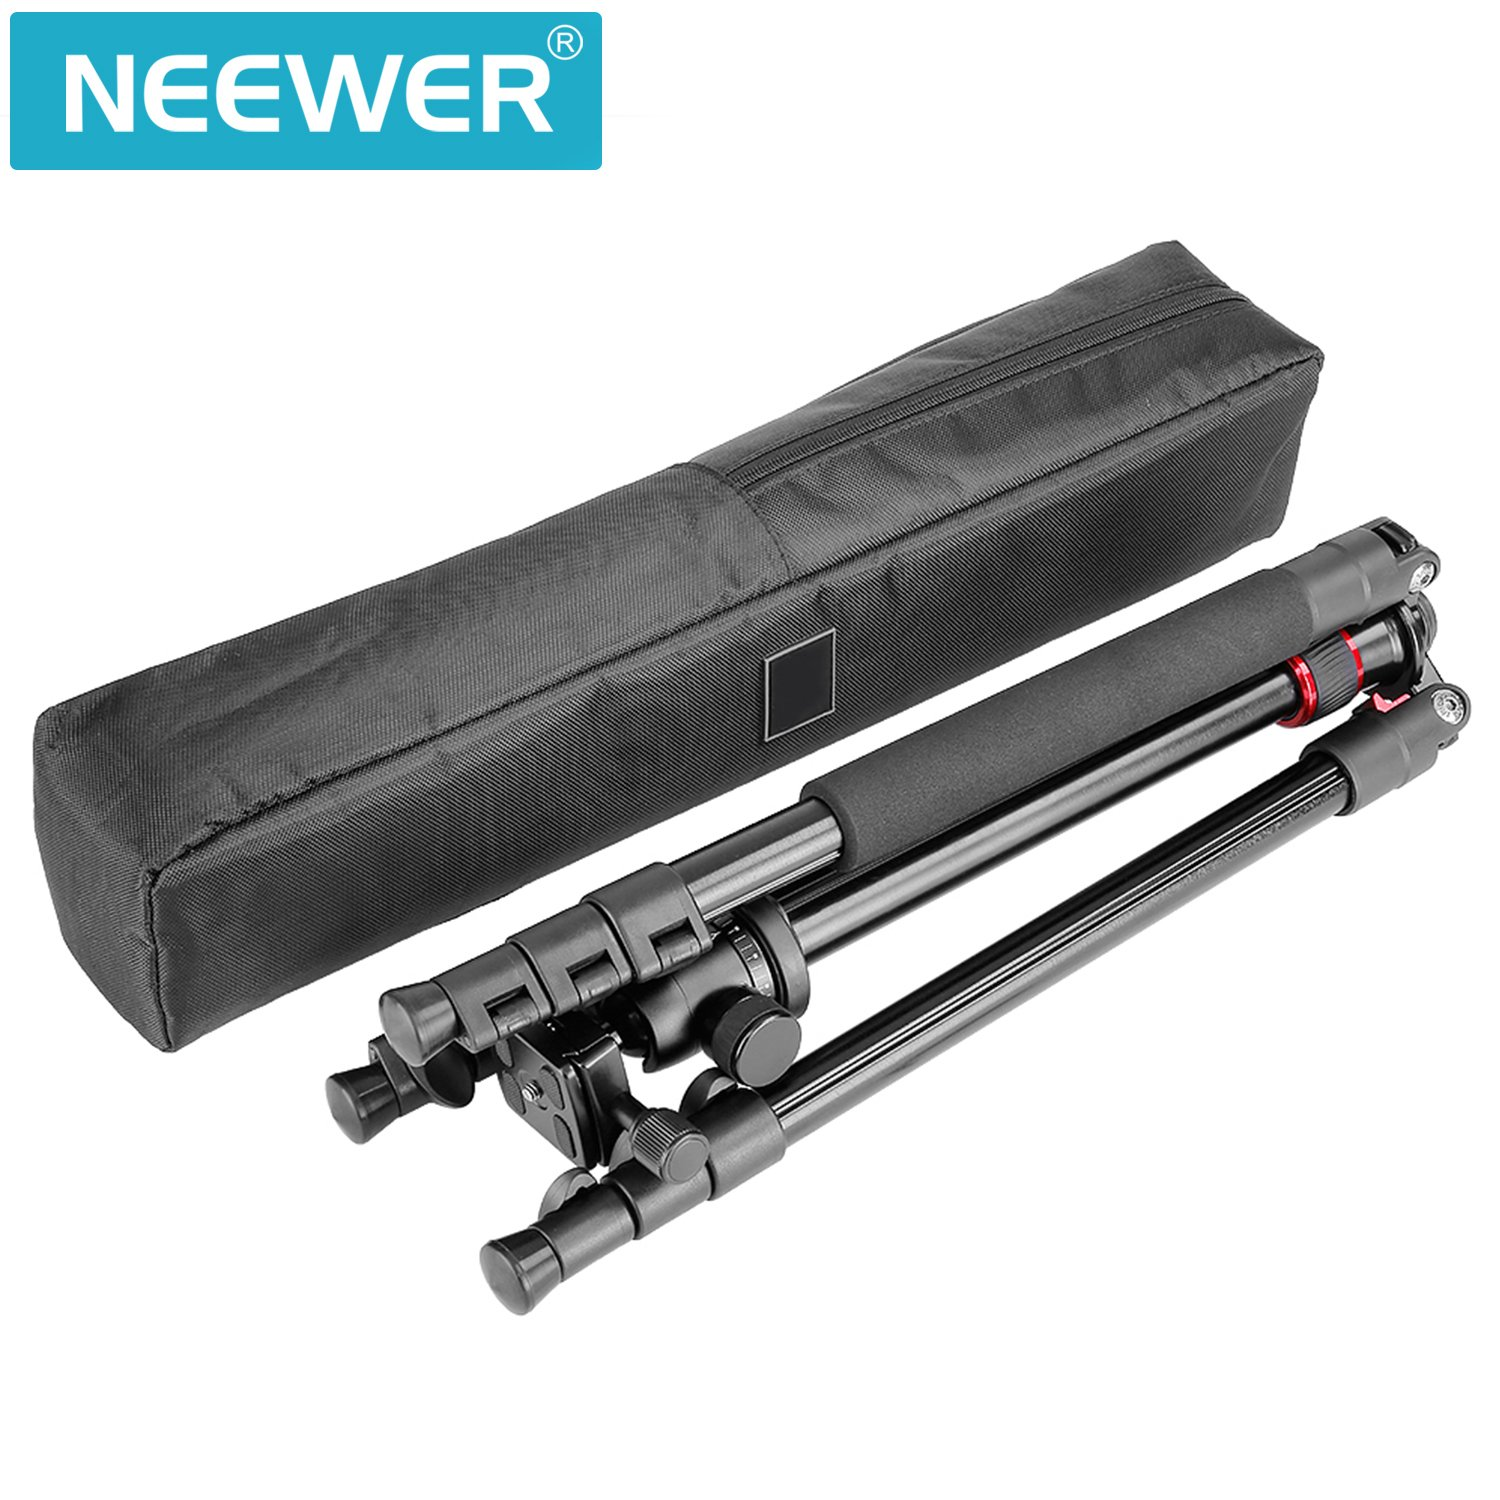 Neewer Alluminum Alloy 62''/158cm Camera Tripod with 360 Degree Ball Head, 1/4'' Quick Shoe Plate, Bag for DSLR Camera, Video Camcorder, Load up to 17.6lbs/8kg